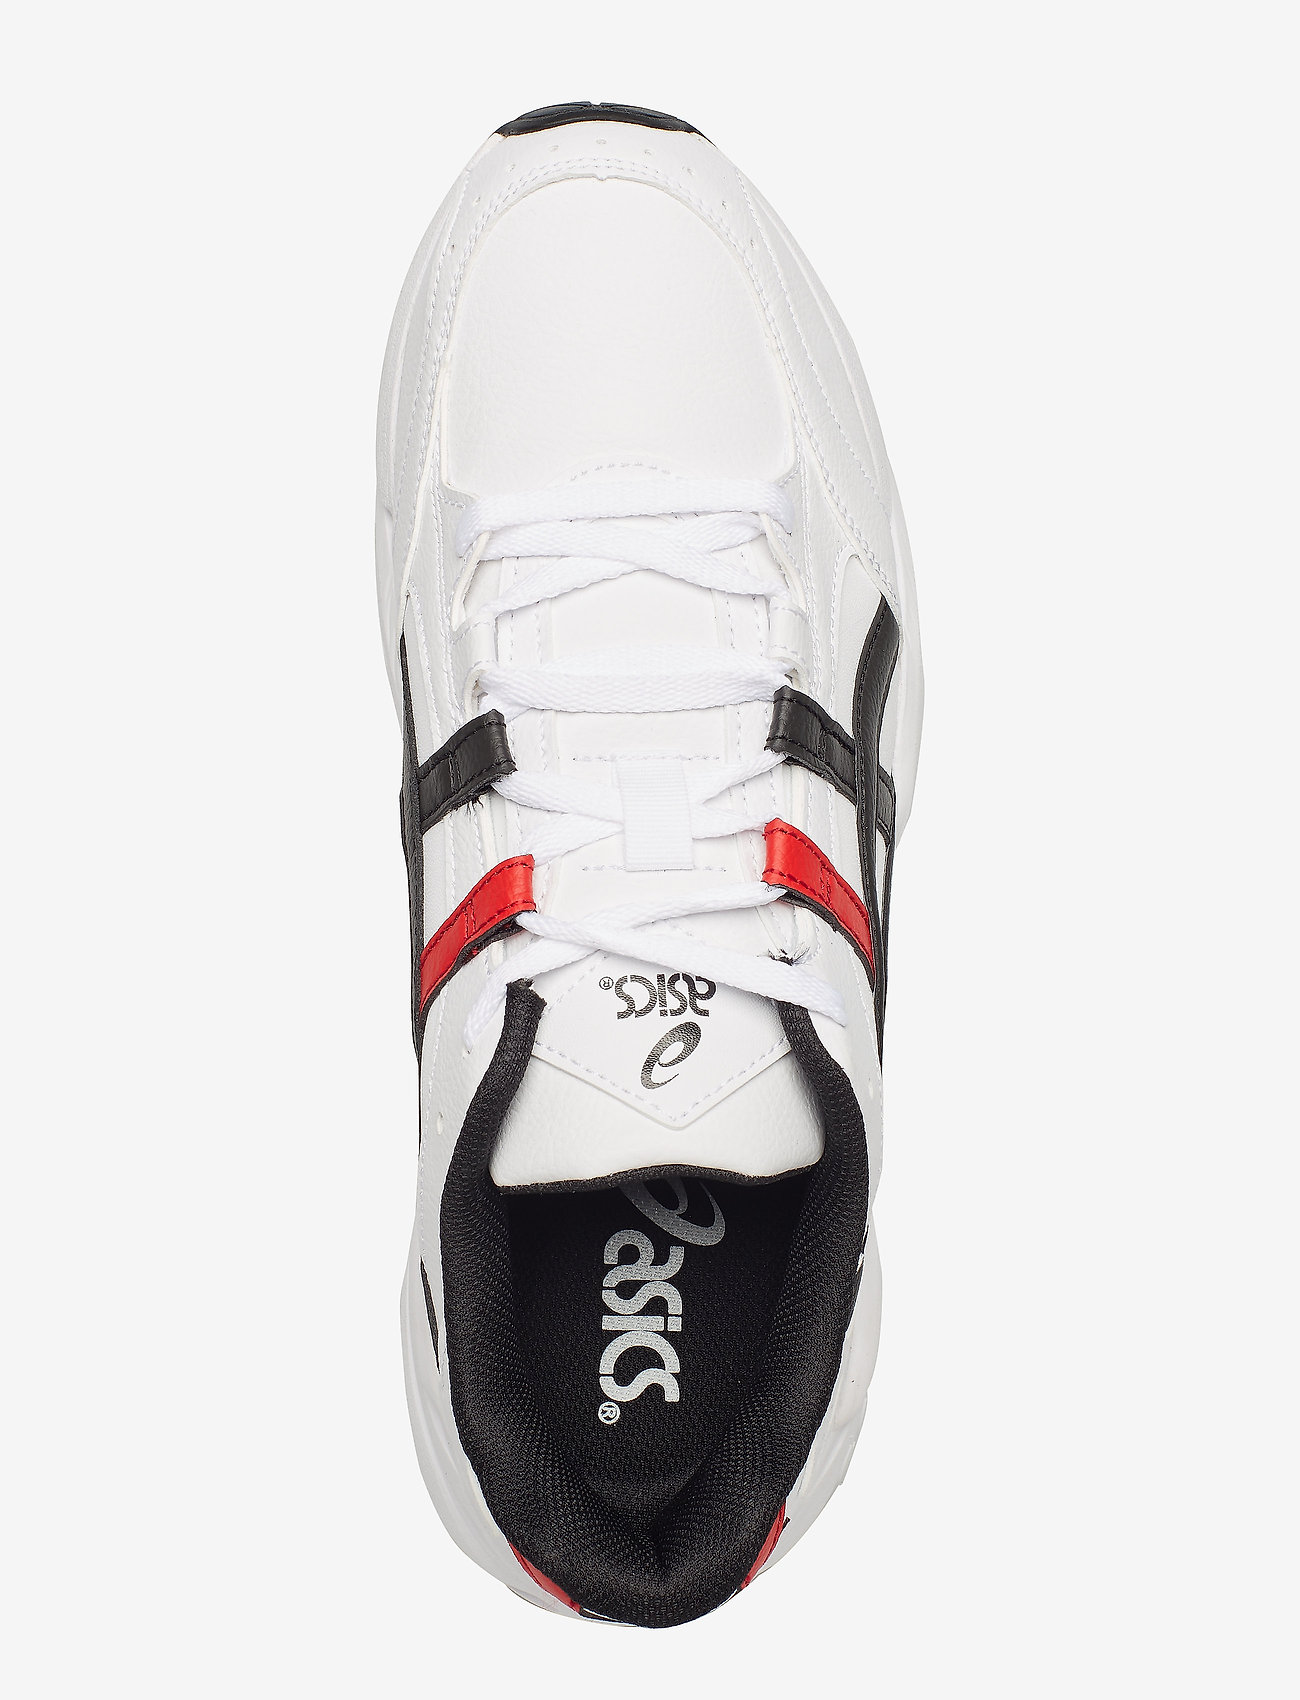 Gel-bnd (White/classic Red) - Asics